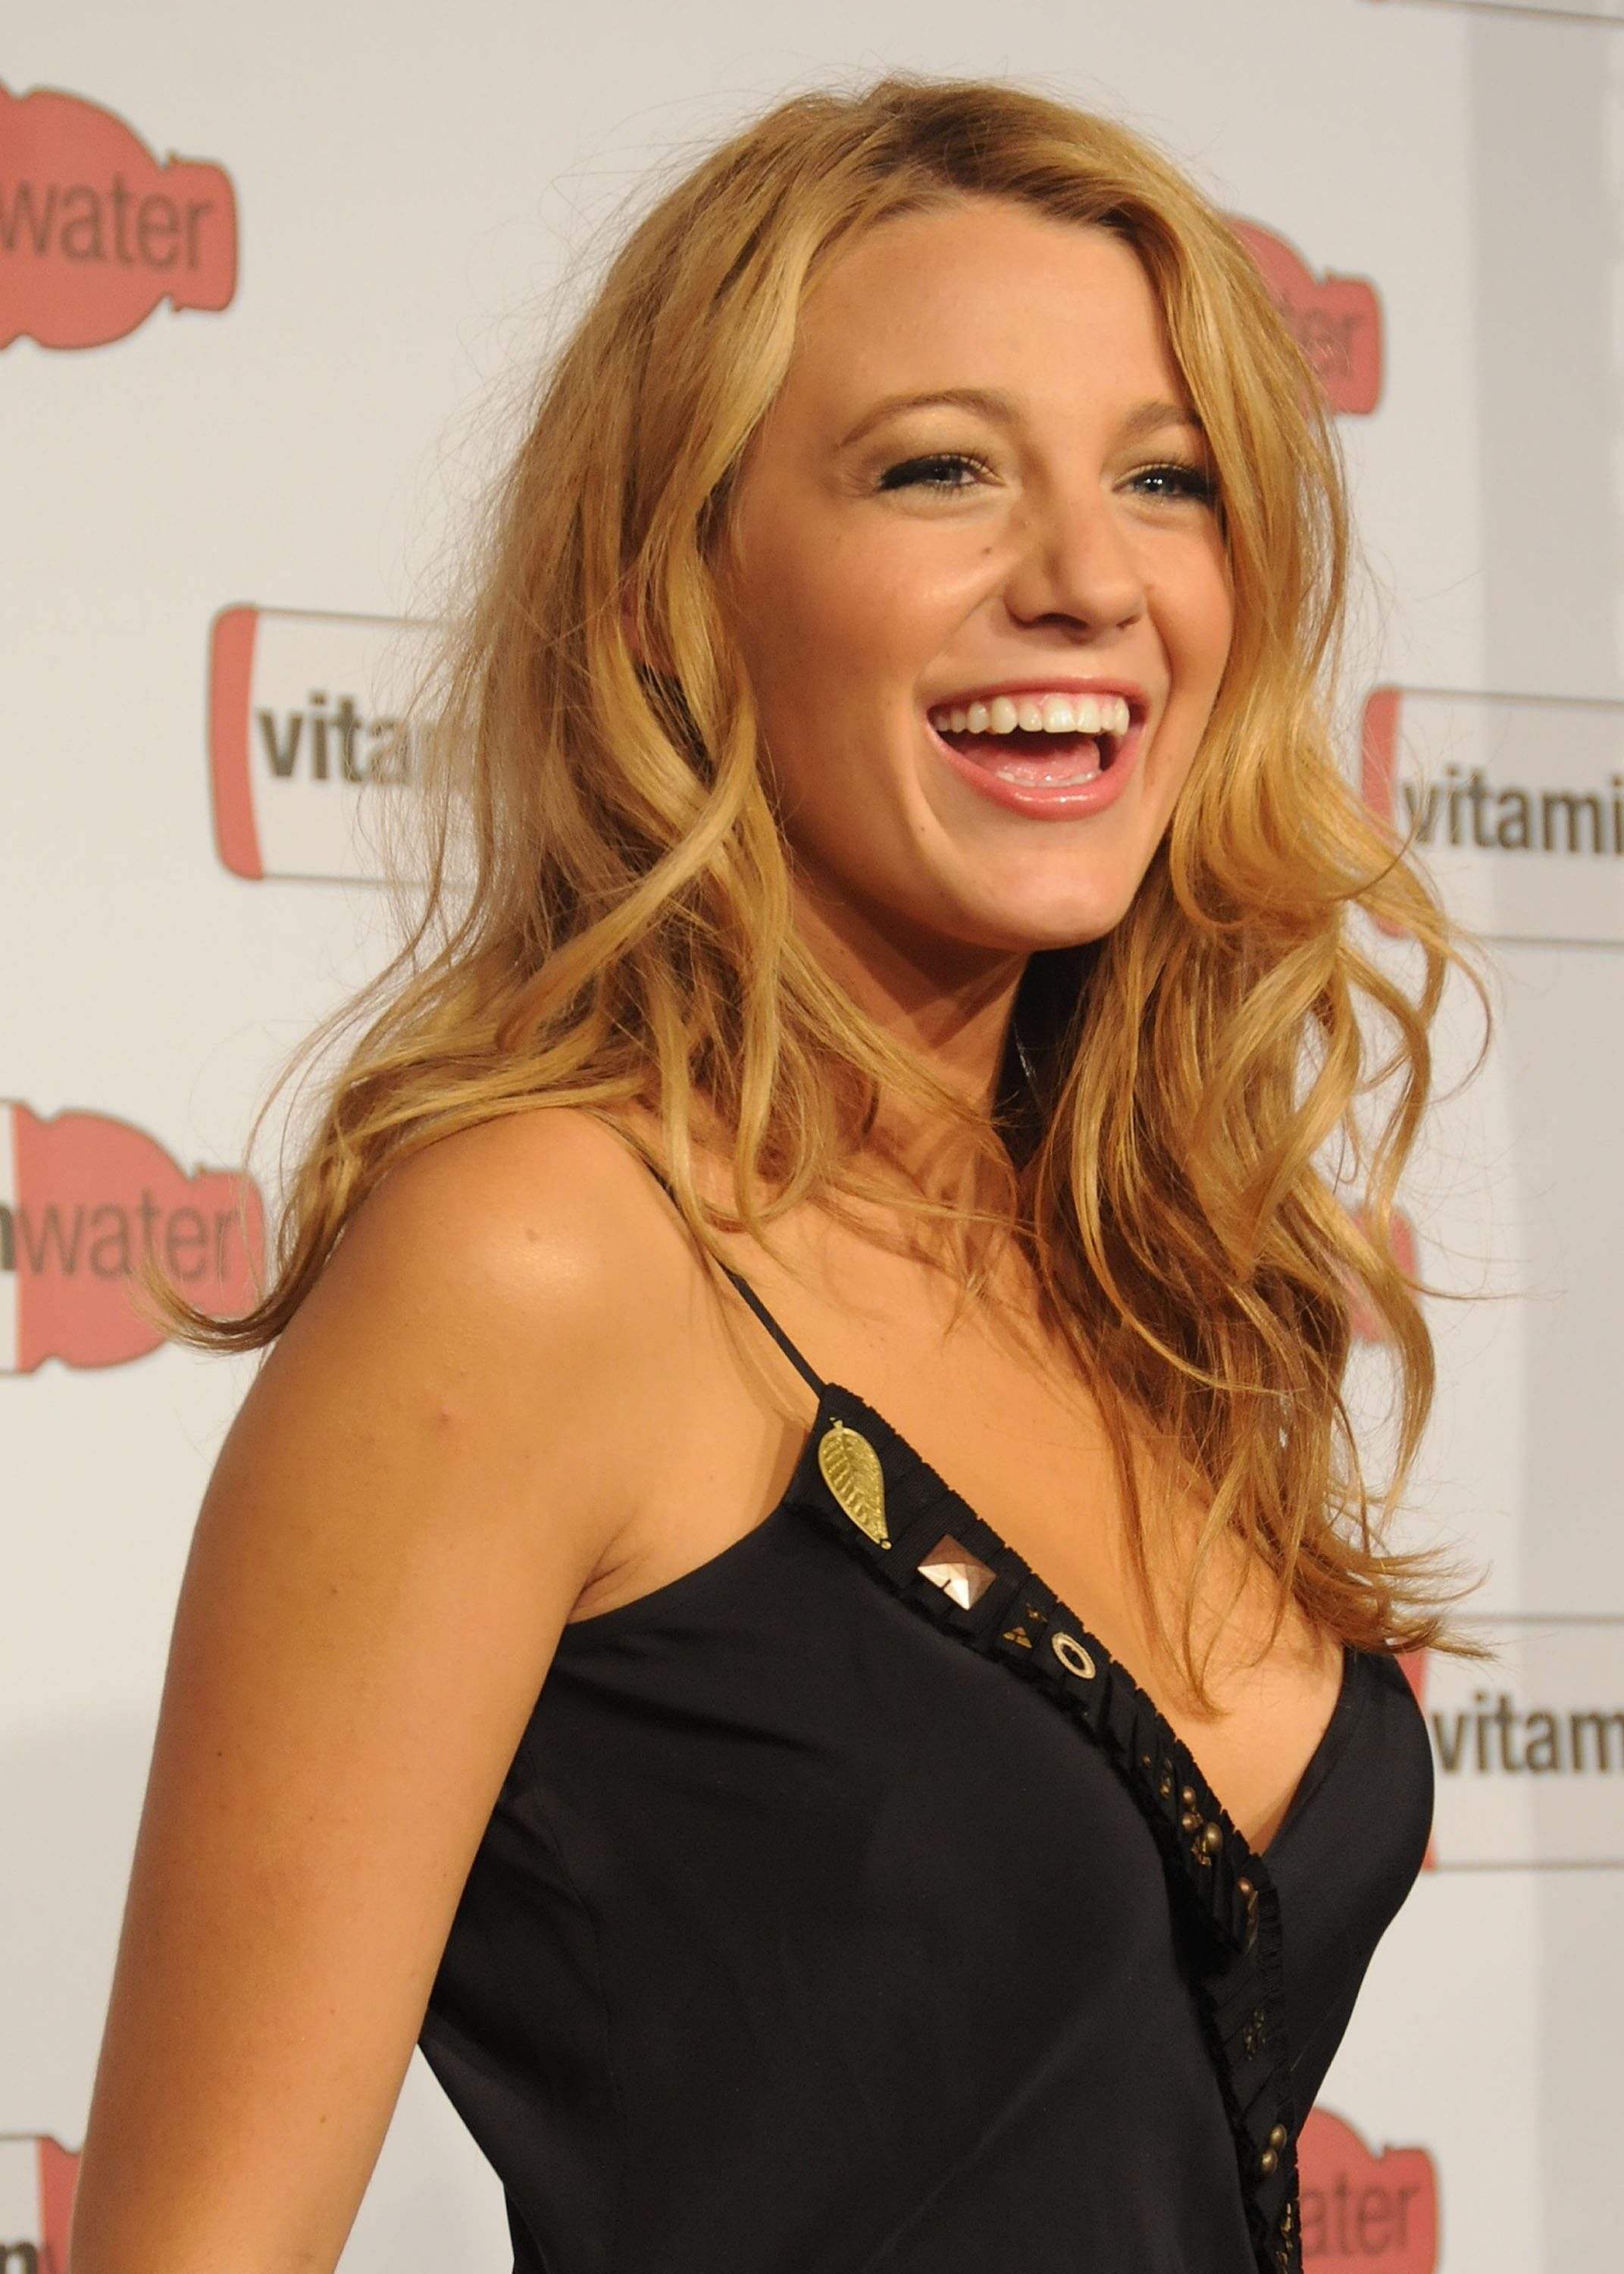 Blake Lively Nose Before And After